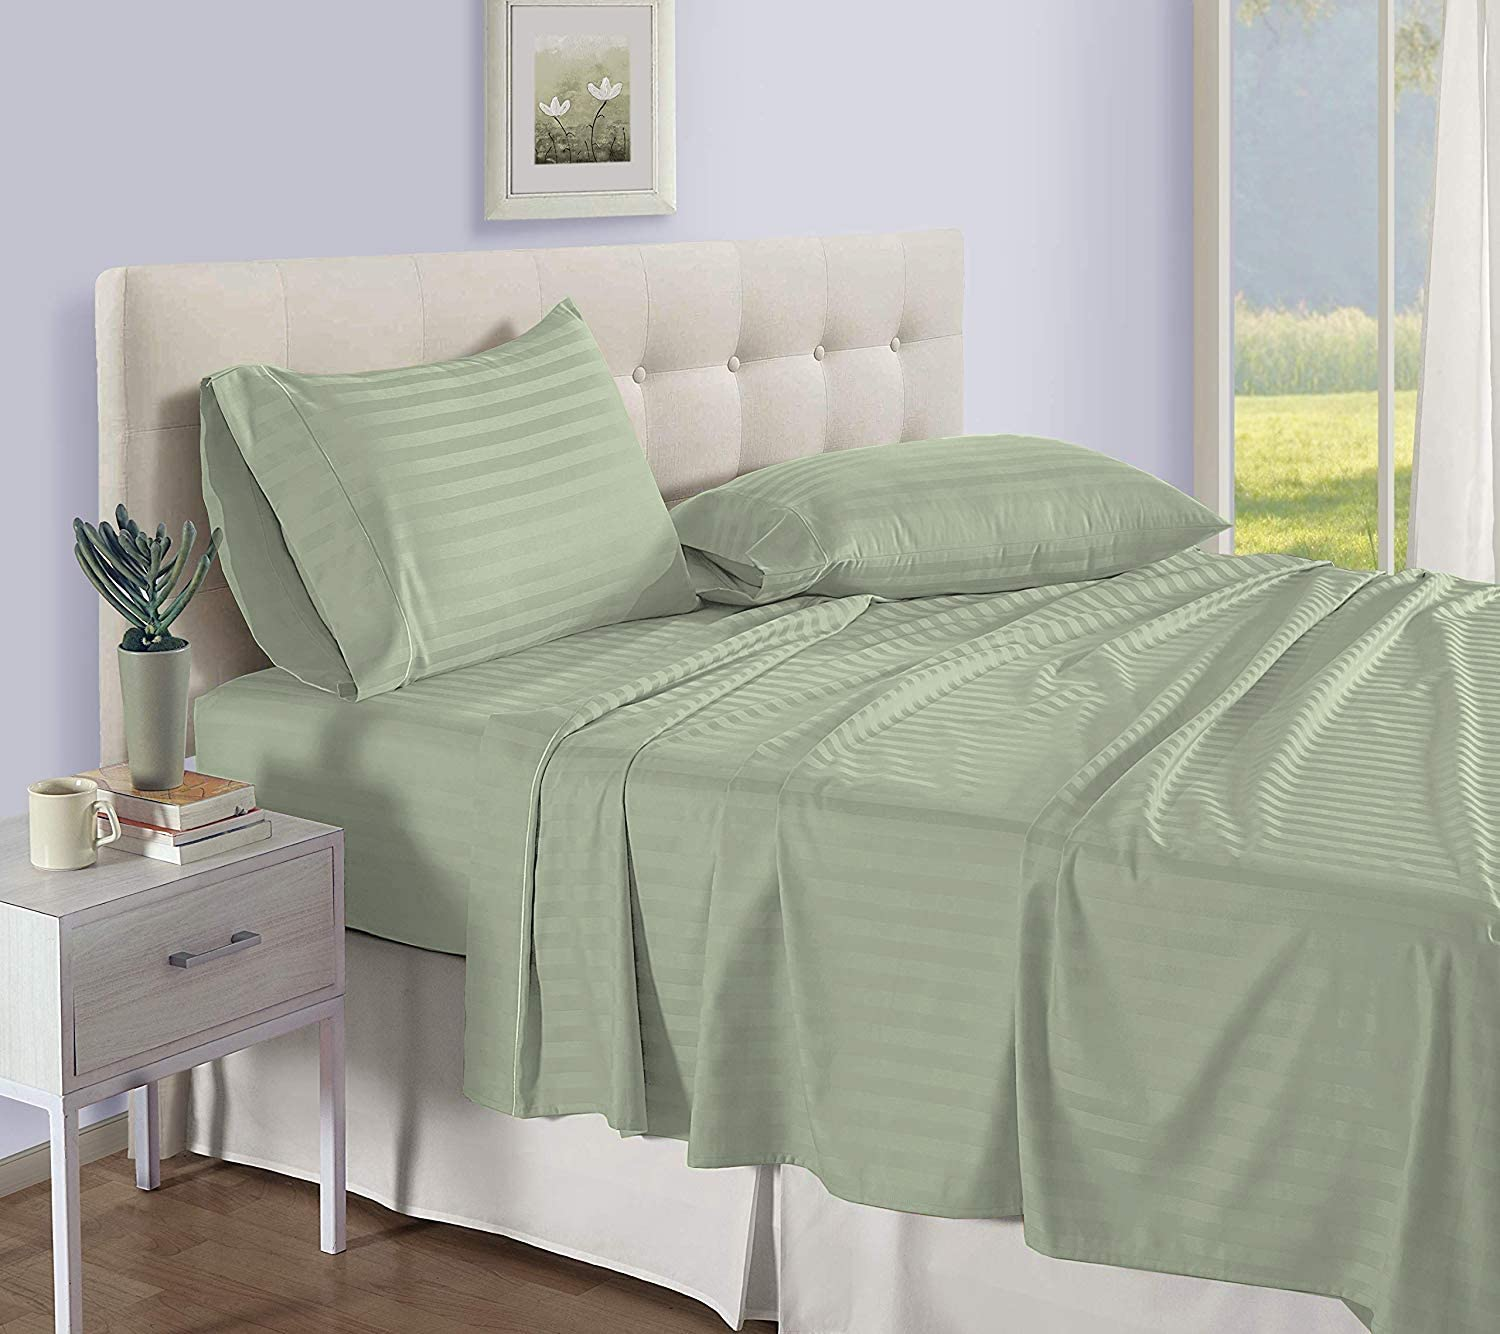 Divatex Home Fashions ThreadoLuxs Luxurious 800 Thread Count Four 4 Piece Queen Size Sage Stripe Bed Sheet Set, 100% Egyptian Cotton, 12